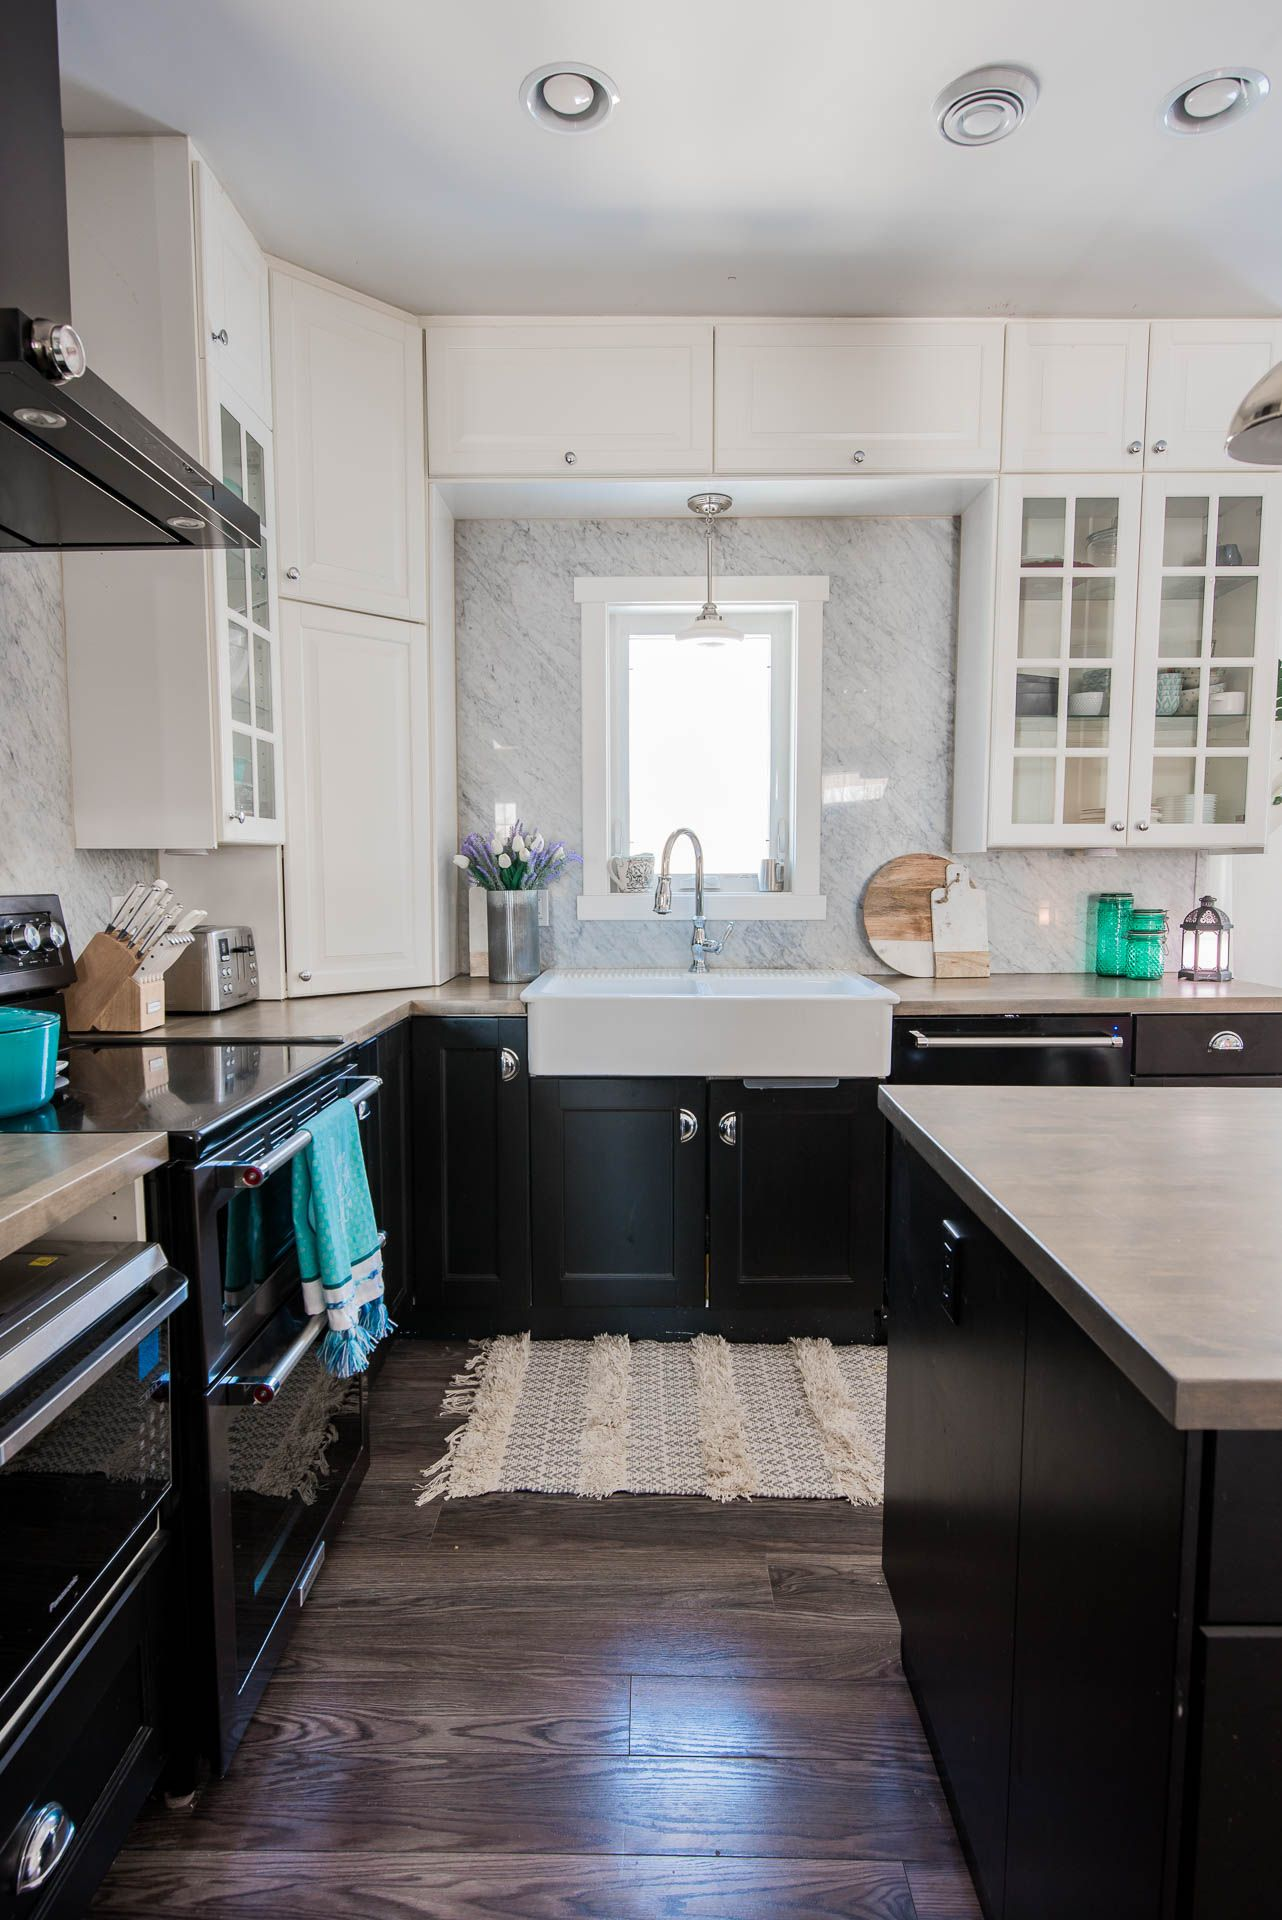 2019 Spring Home Tour Romantic French Country With A Modern Twist The Diy Mommy Kitchen Cabinets With Black Appliances Kitchen Remodel Black Kitchen Cabinets